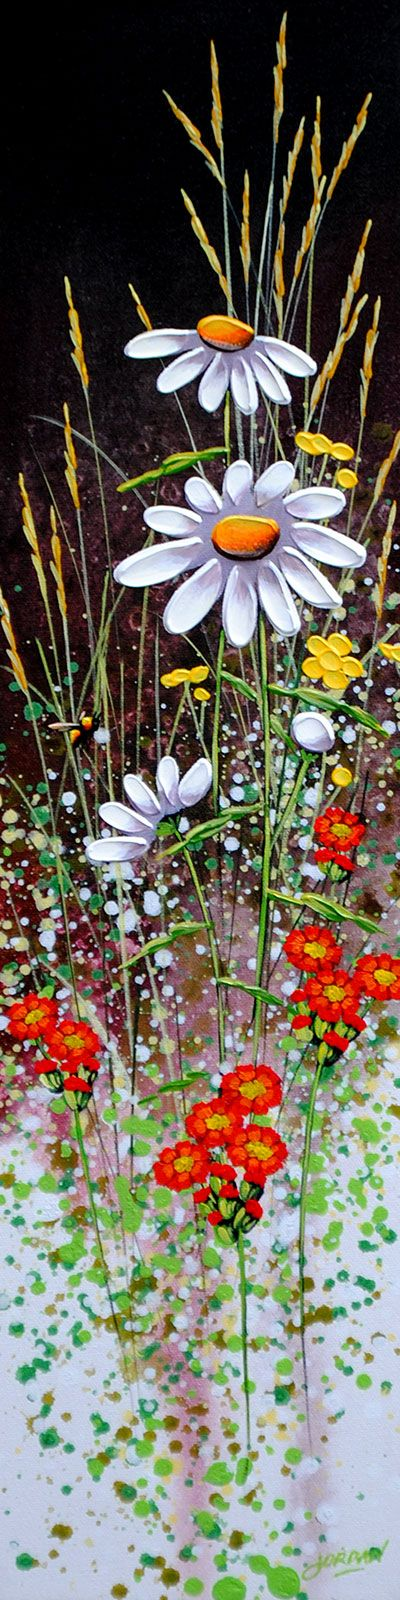 """""""Daisies and Bee"""" by Jordan Hicks."""